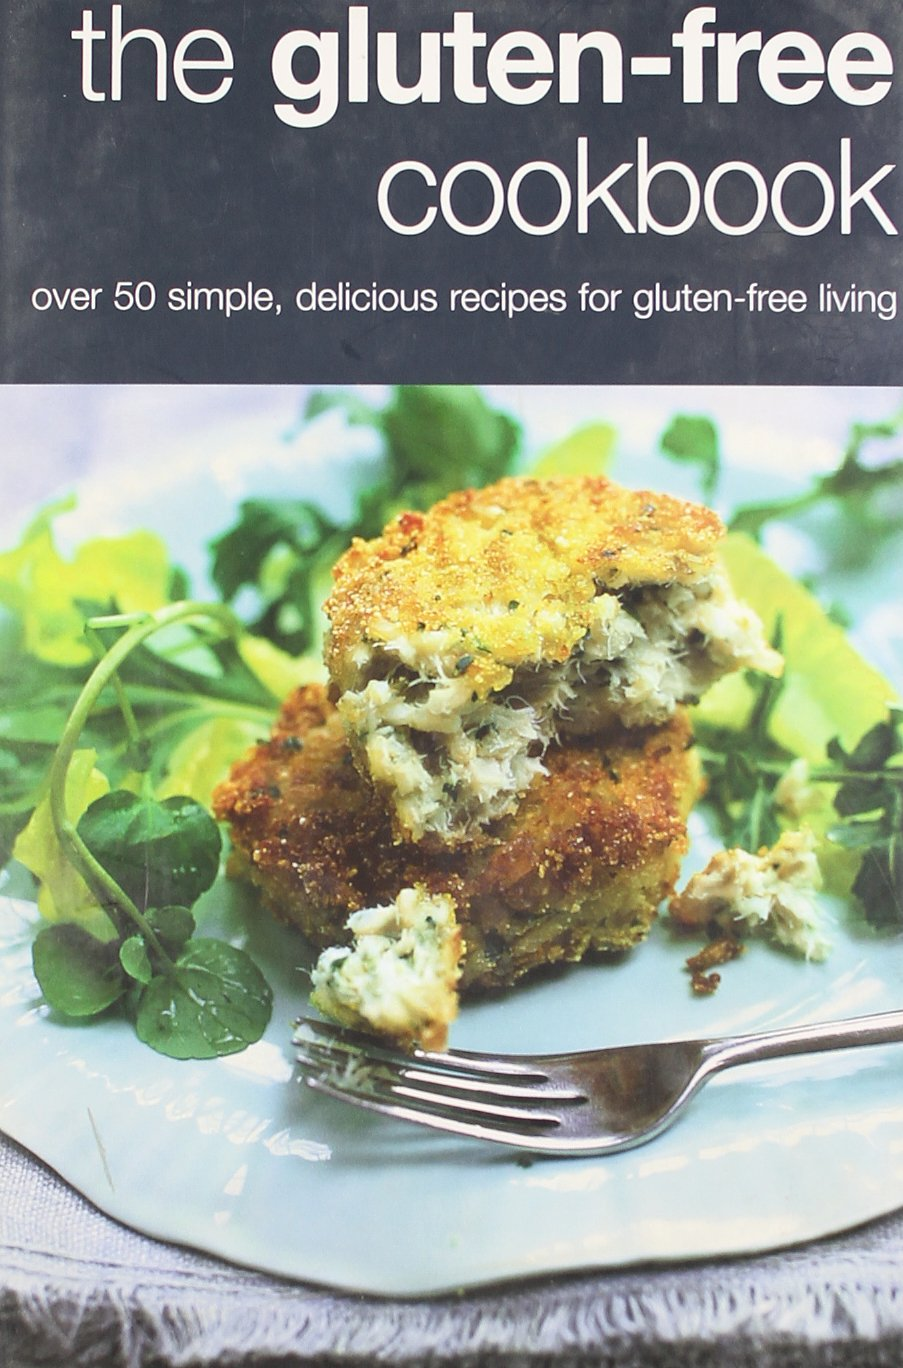 The Gluten-Free Cookbook: Over 50 Simple, Delicious Recipes for Gluten-free Living PDF